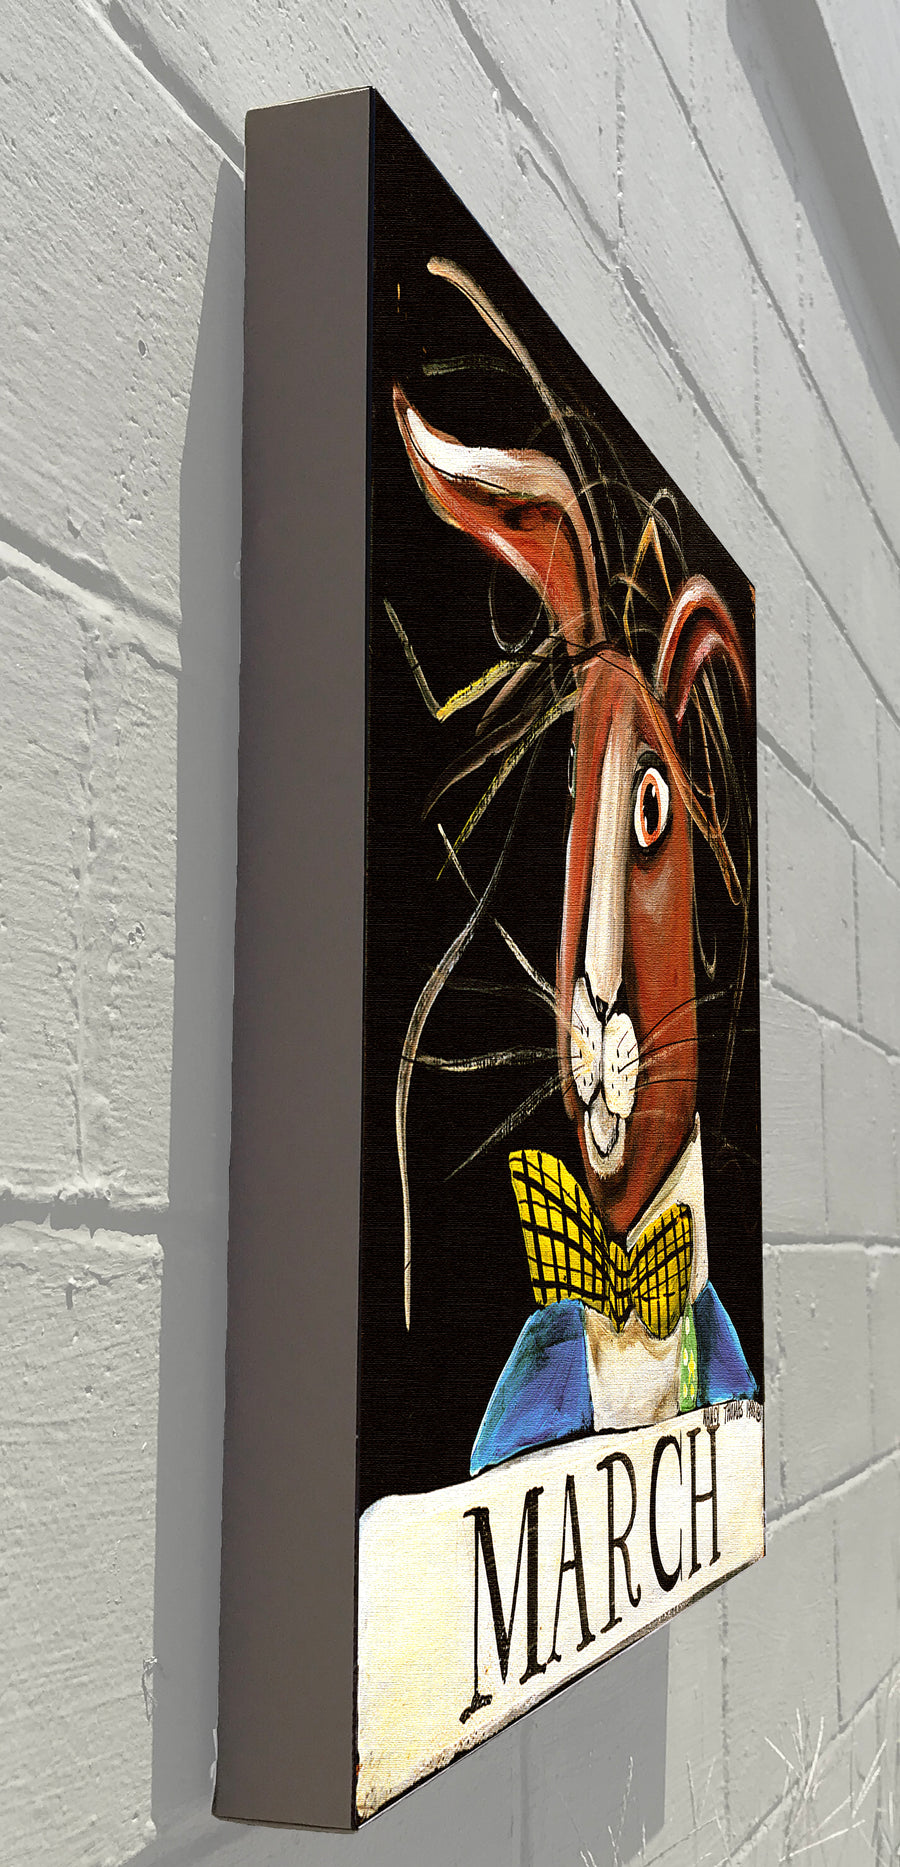 Gallery Grand - March Hare - Original Month Series